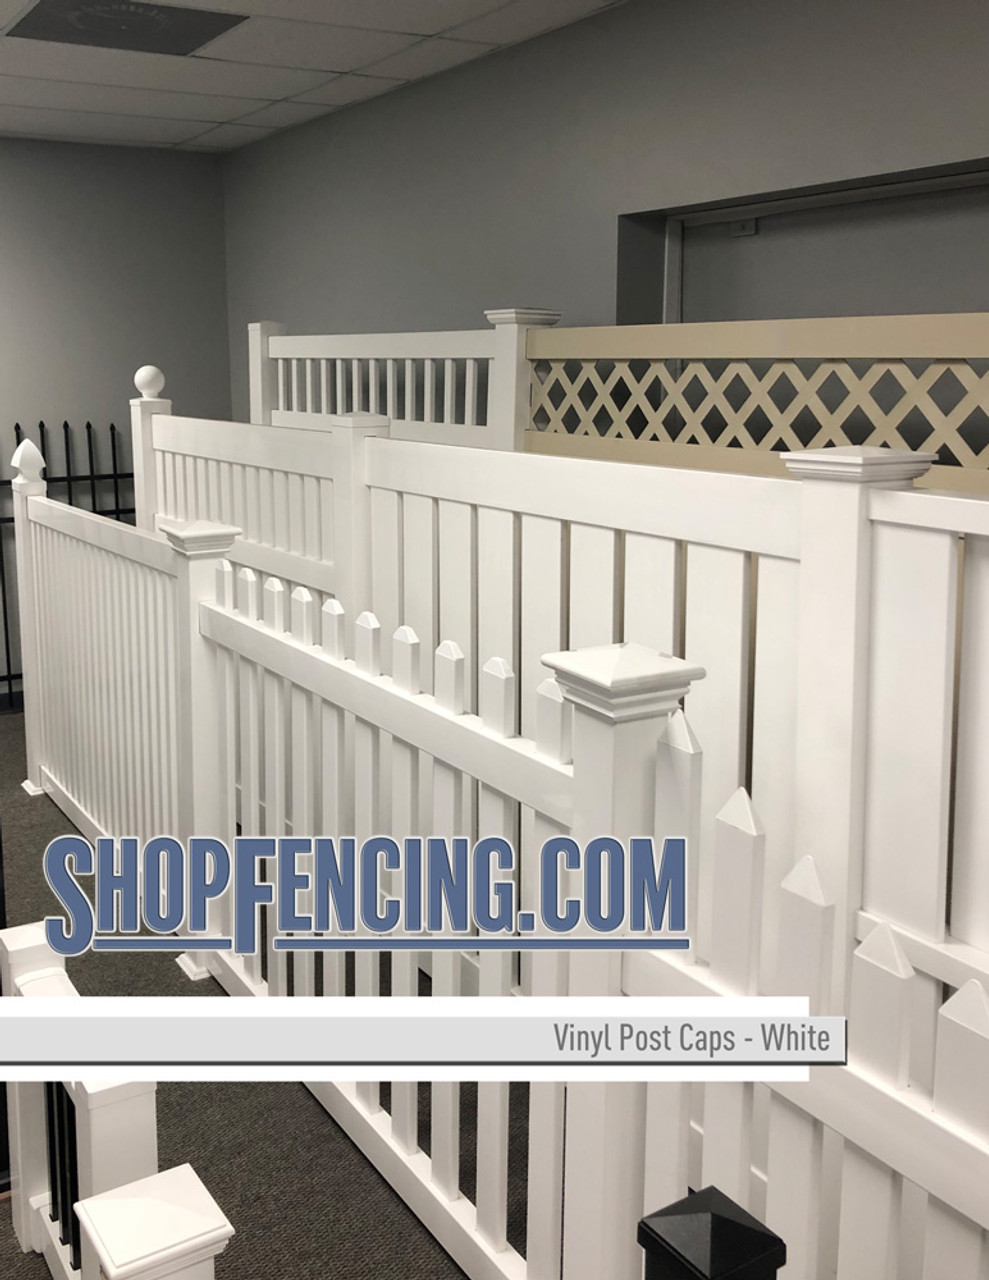 Vinyl Privacy Fence Posts & Caps From ShopFencing.com